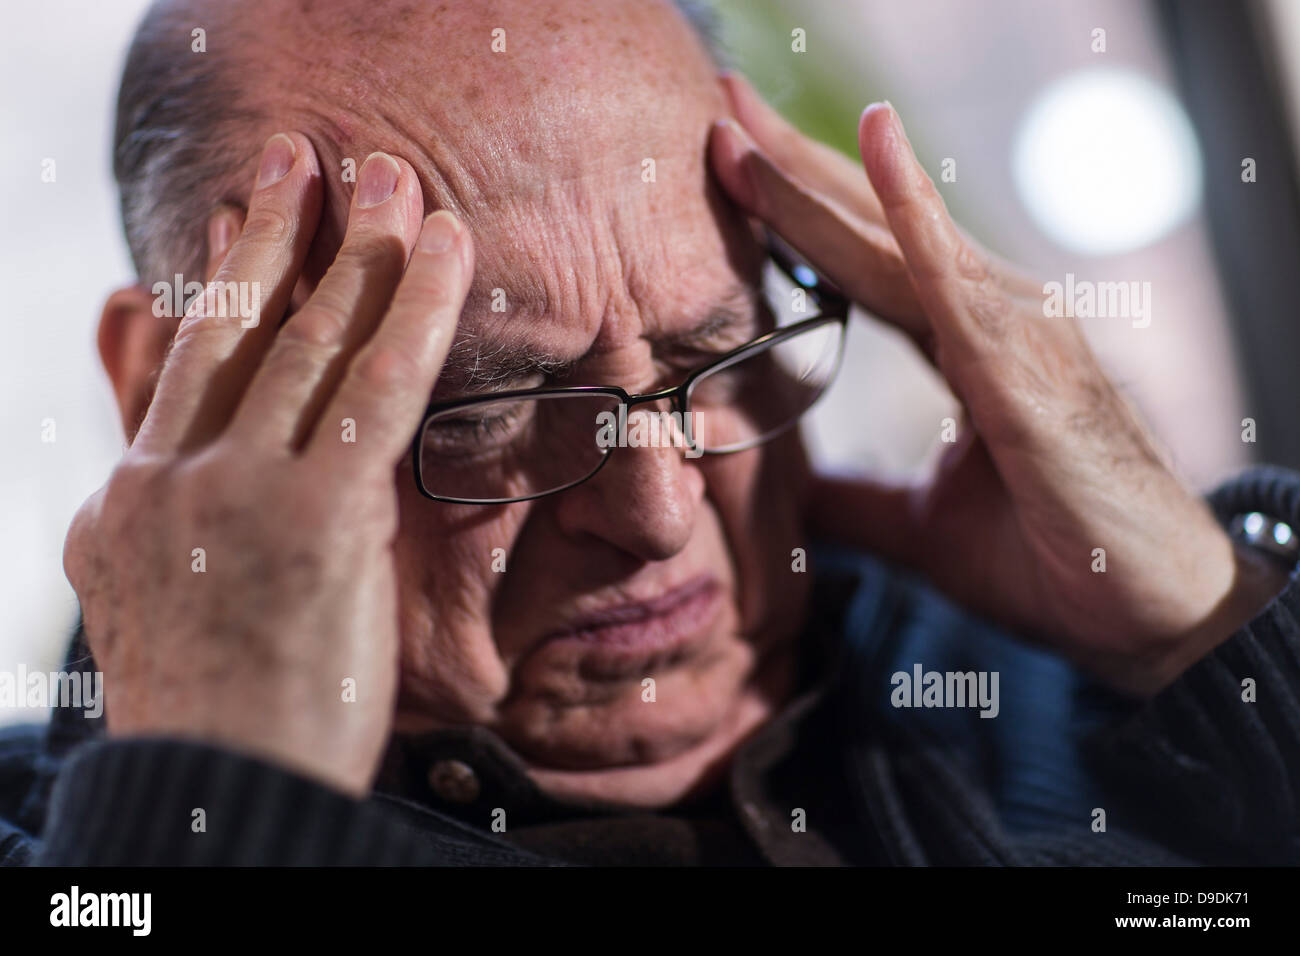 Senior man with eyes closed, wearing glasses, looking stressed Stock Photo